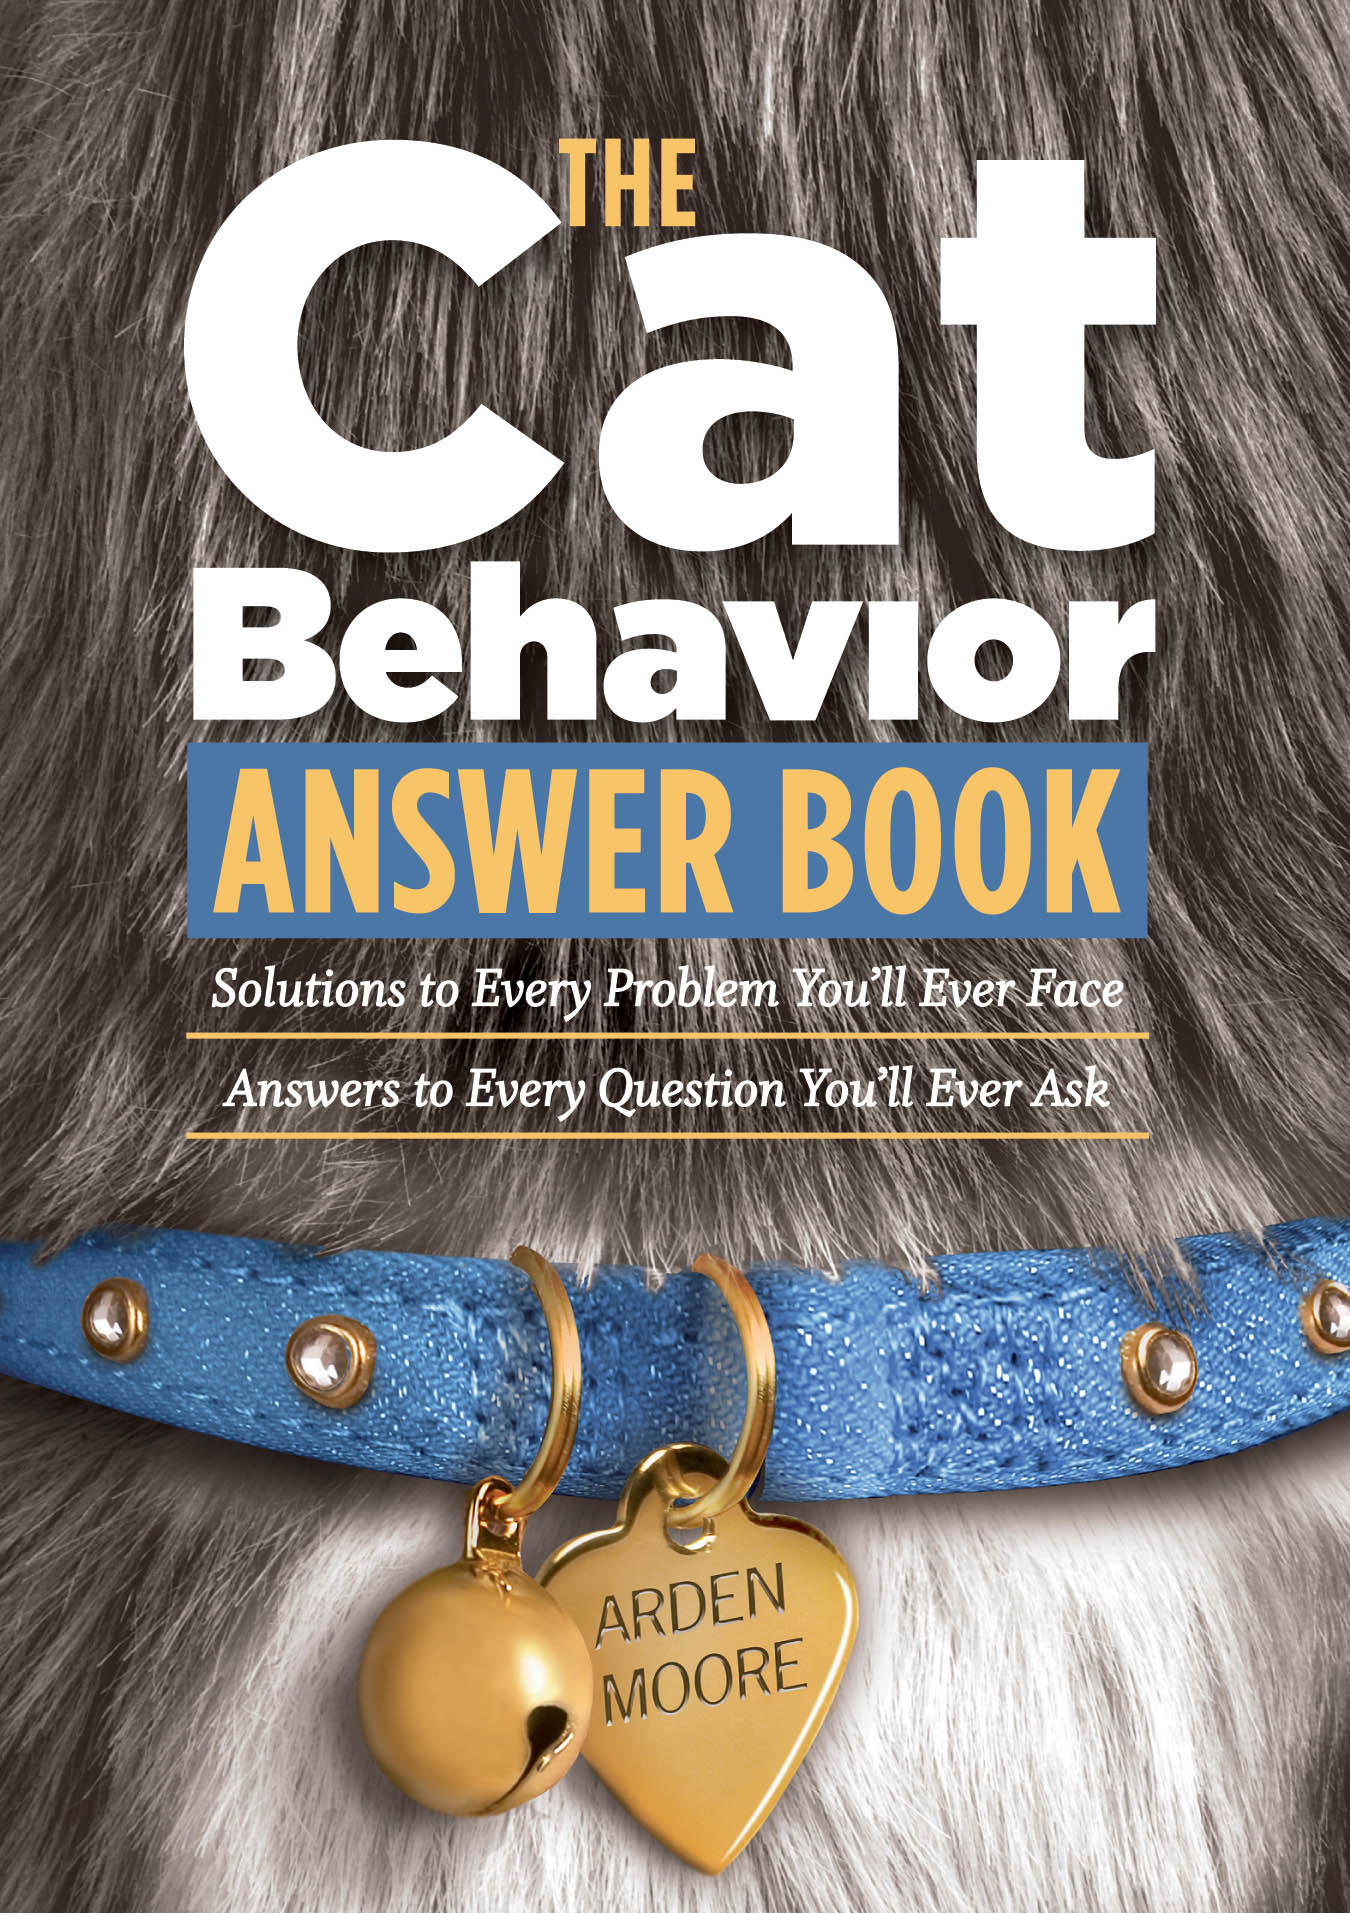 The Cat Behavior Answer Book Solutions to Every Problem You'll Ever Face; Answers to Every Question You'll Ever Ask - Arden Moore